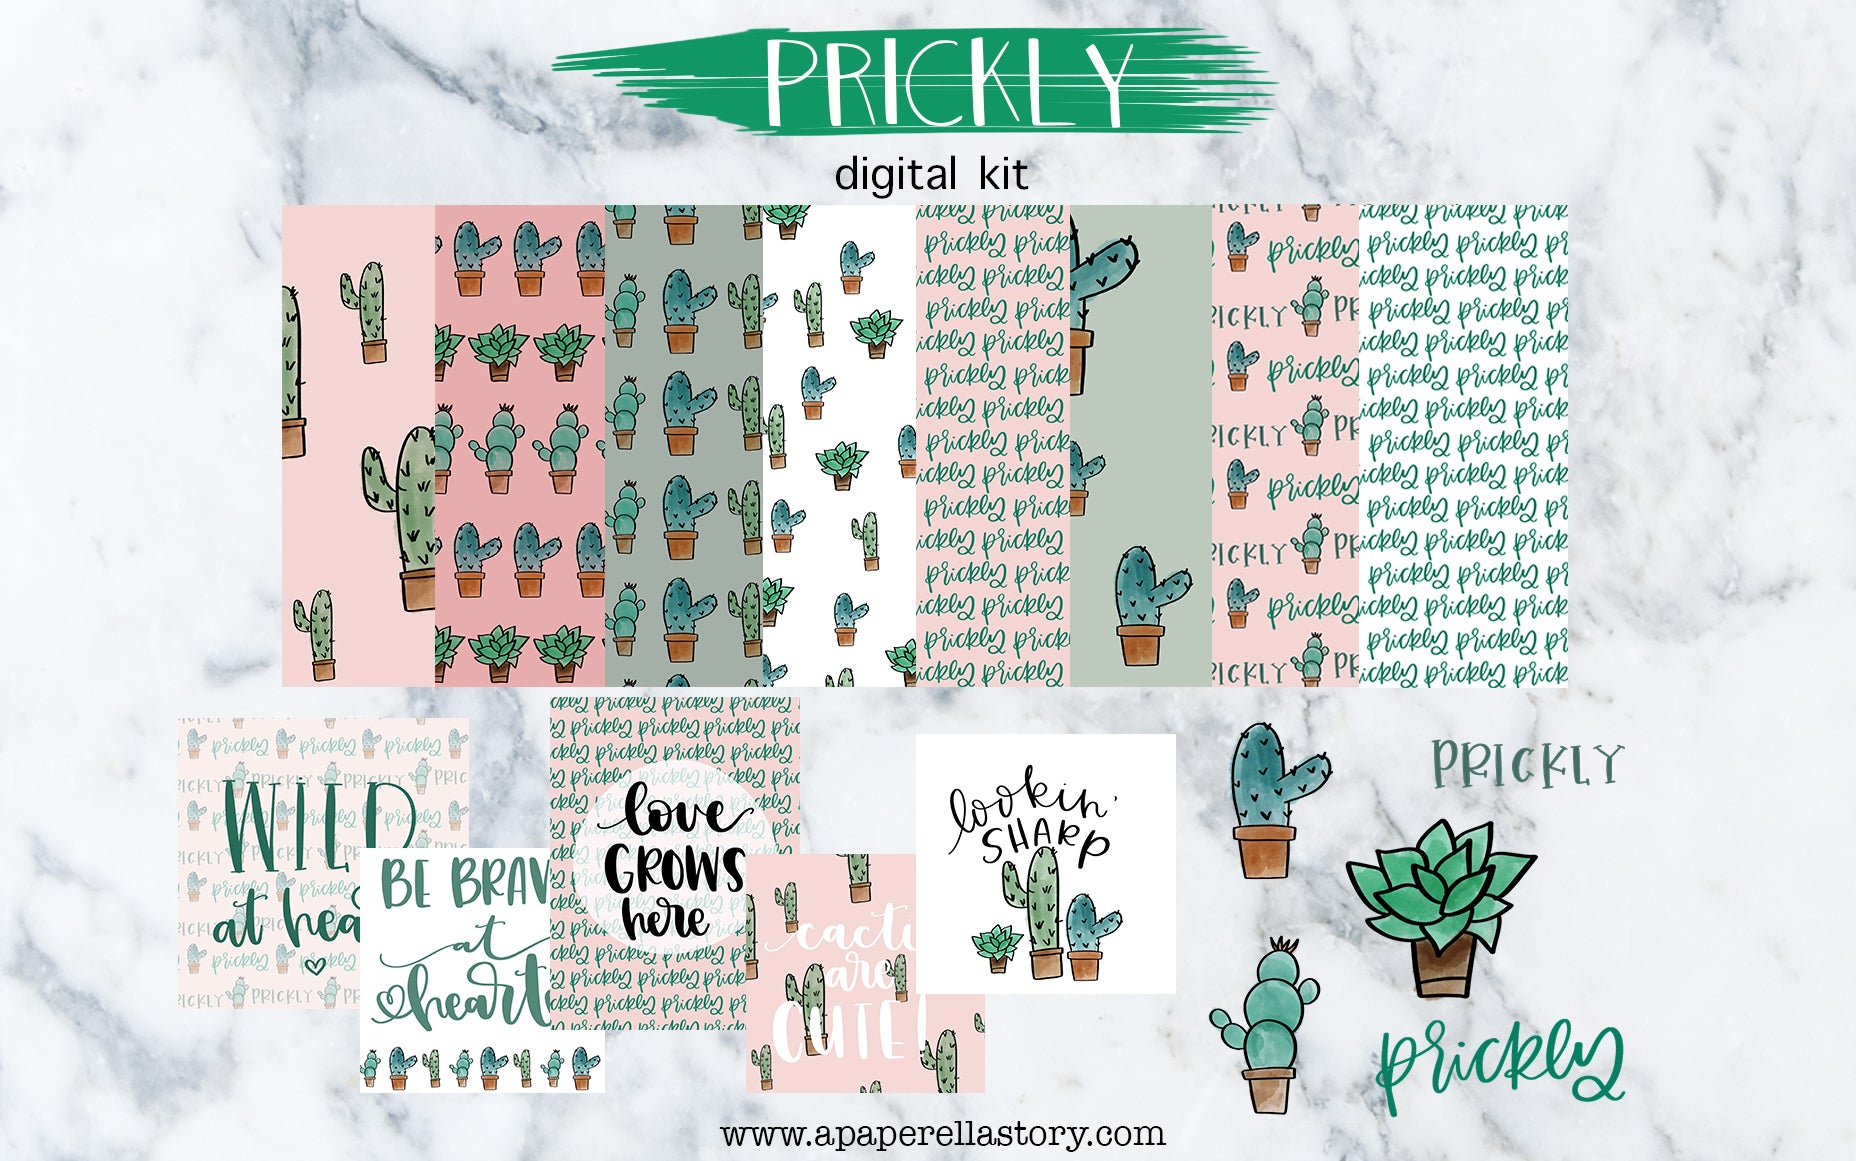 Prickly - Digital Kit